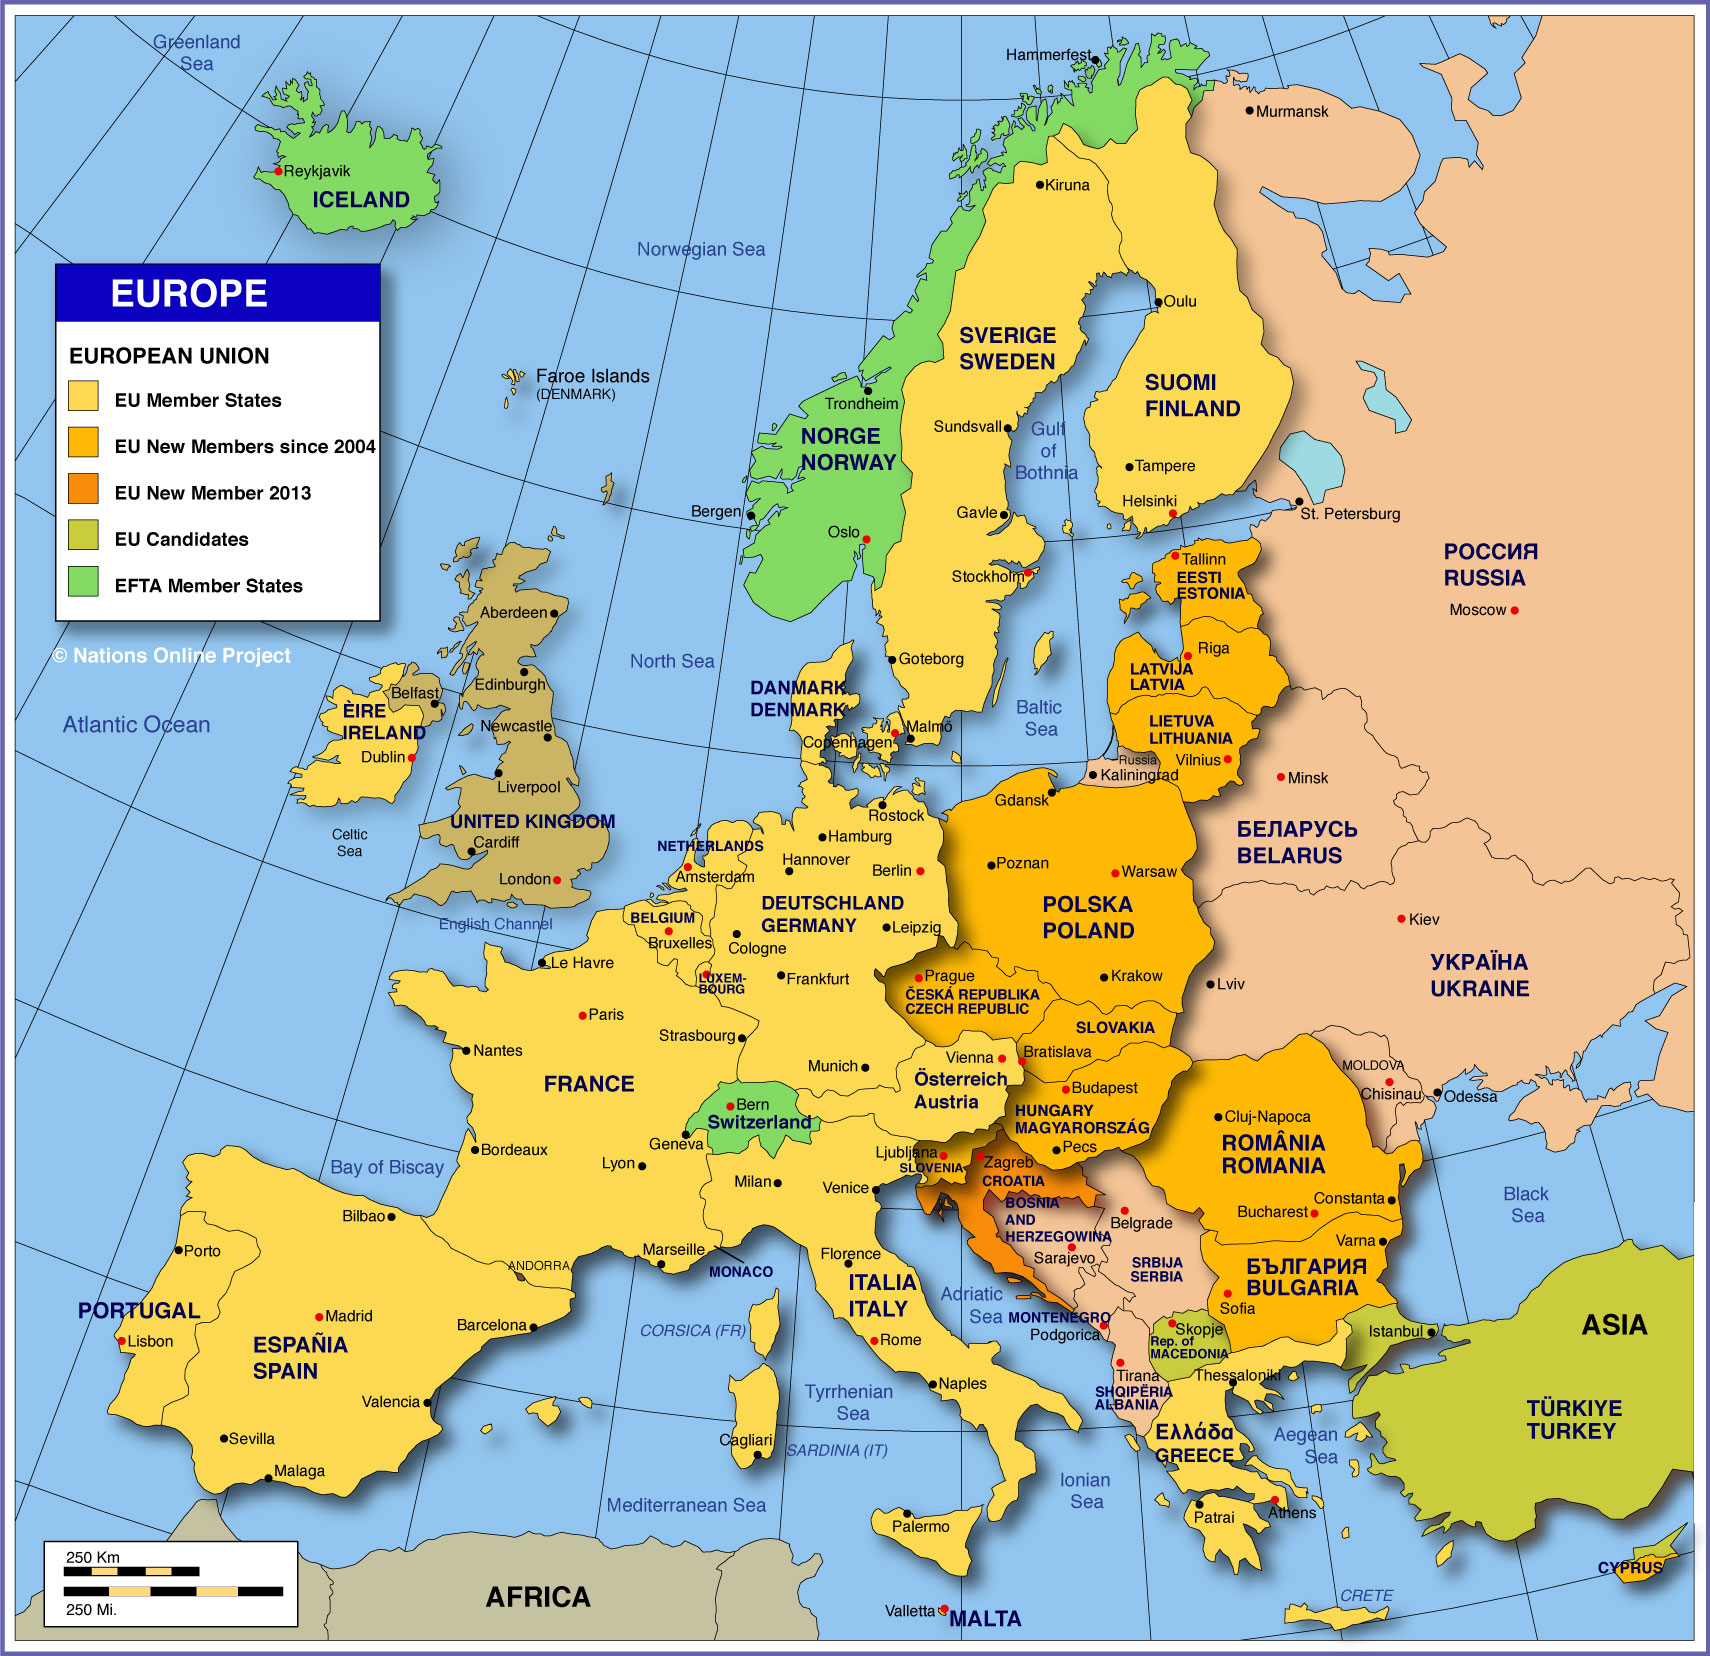 countries-europe-map-2018